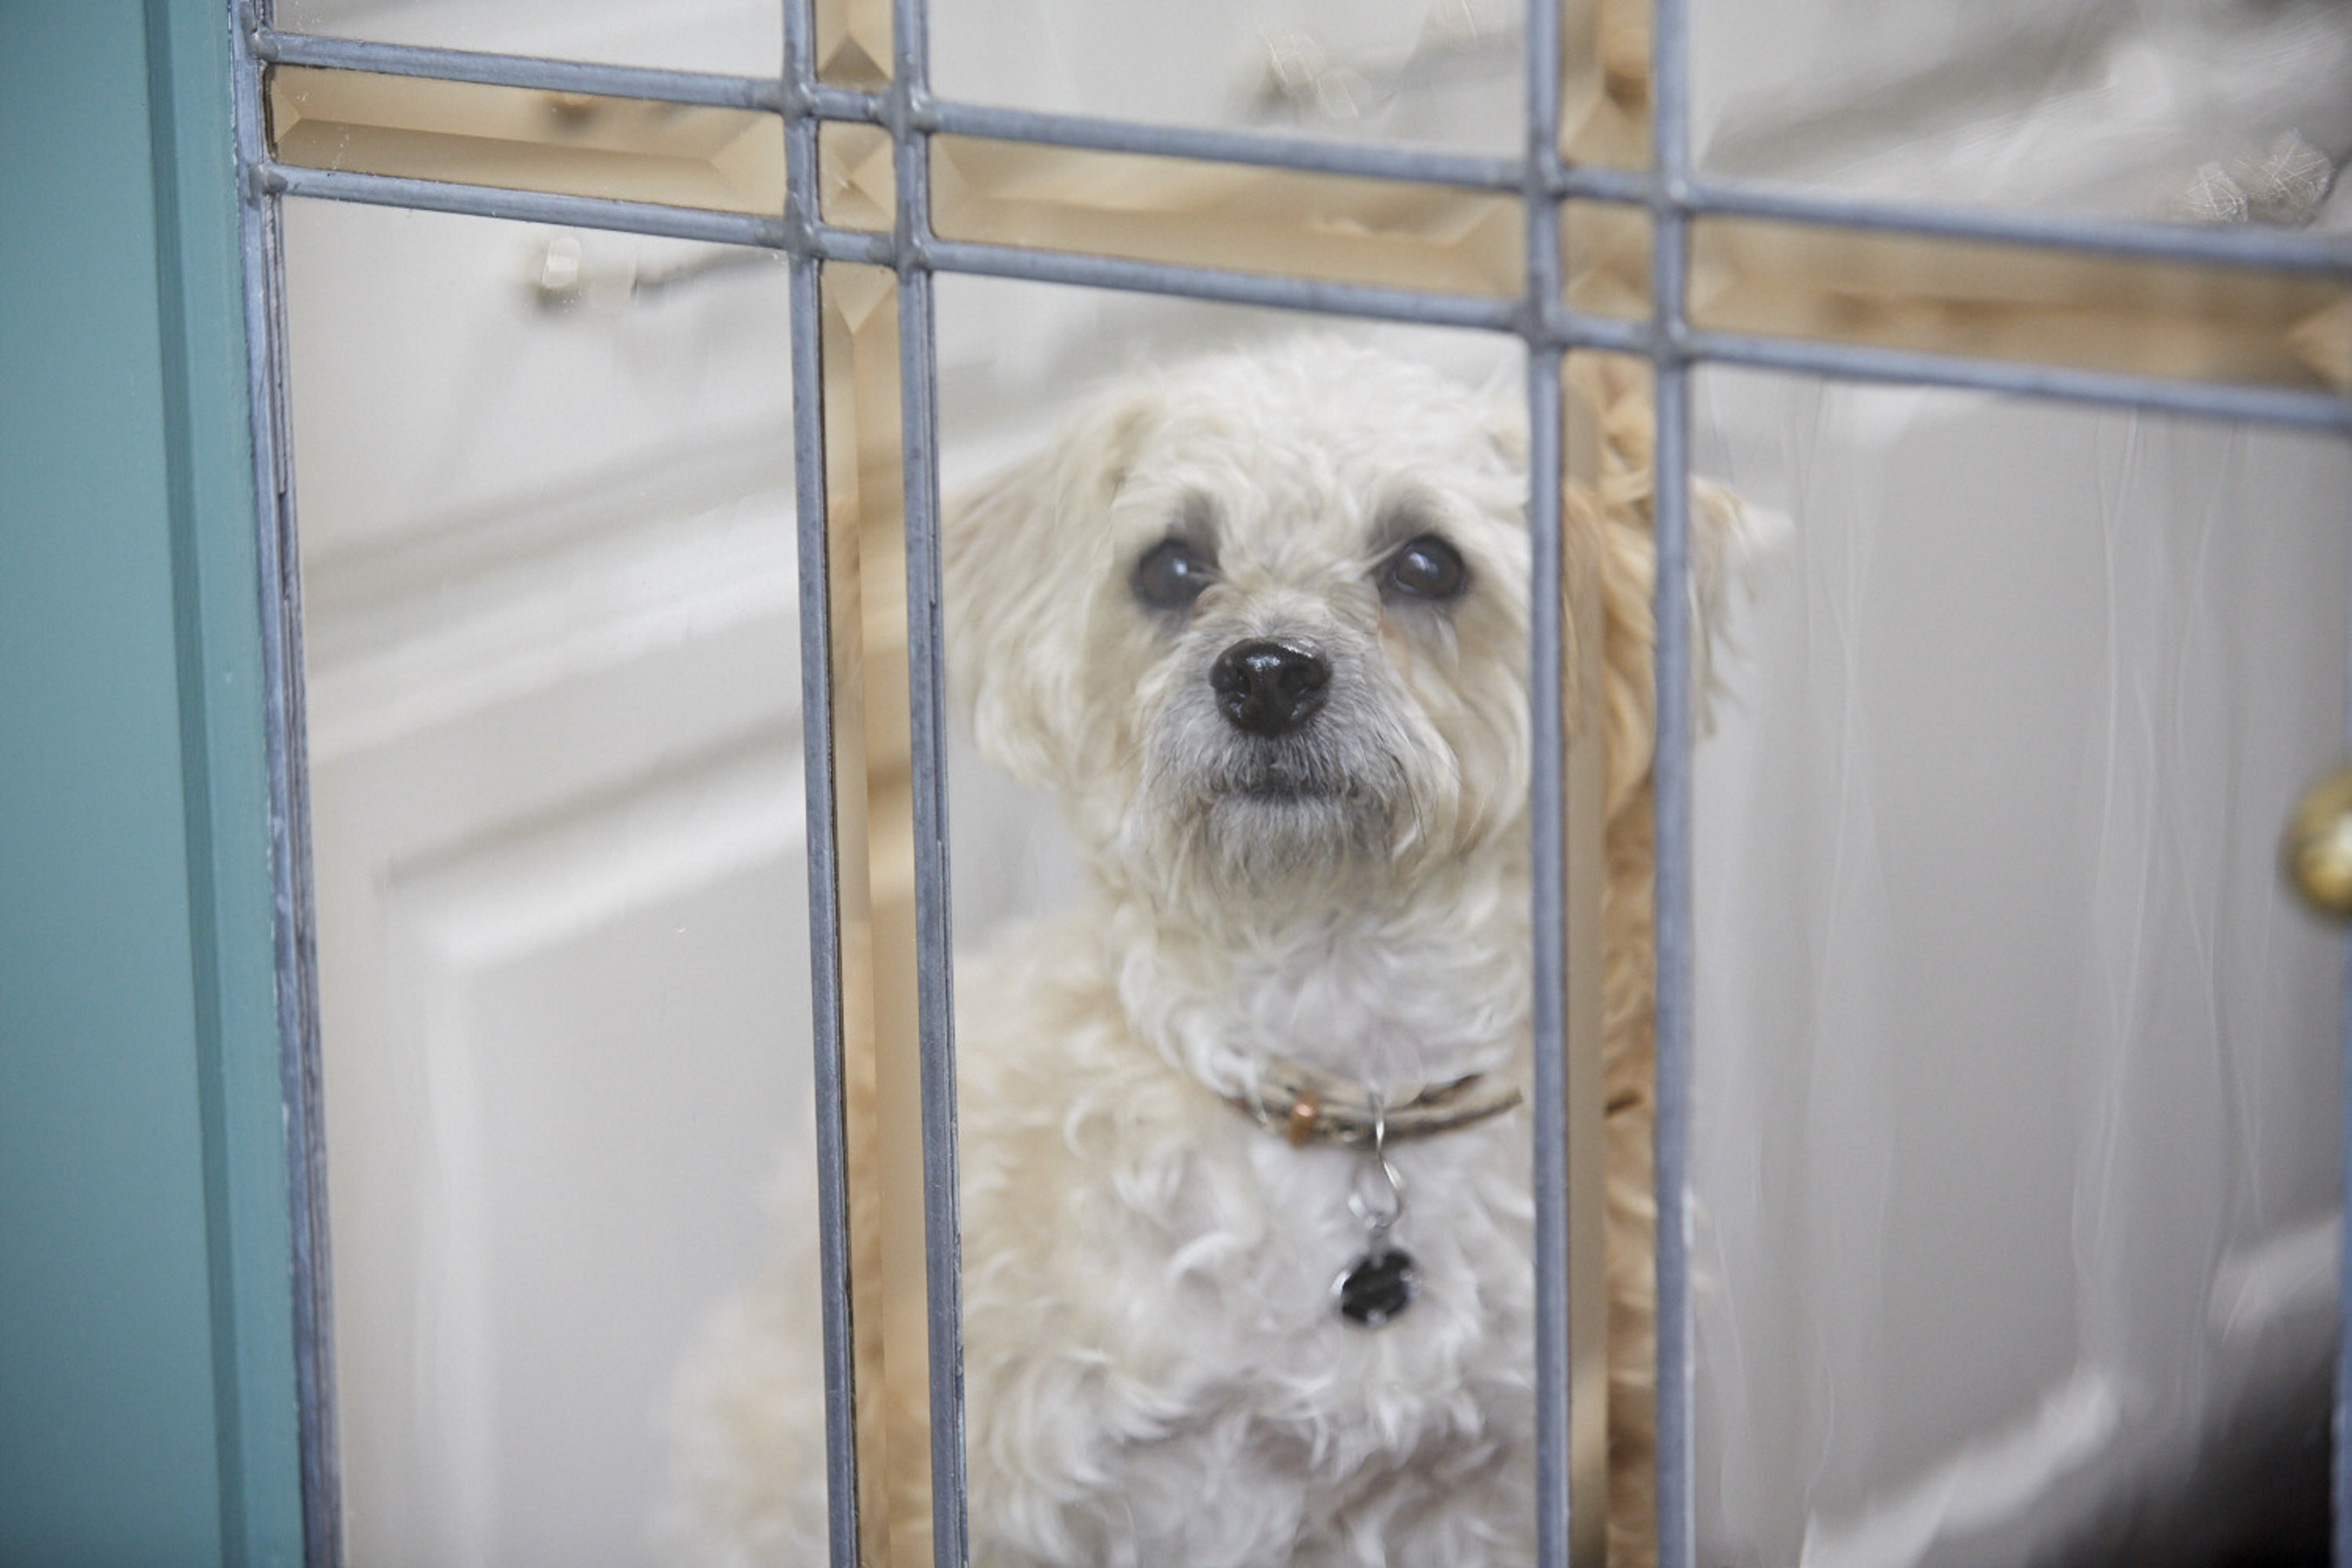 """Max, above, is one of the rescue dogs starring in the Coldwell Banker Real Estate """"Home's Best Friend"""" television commercial. Coldwell Banker Real Estate has joined with Adopt-a-Pet.com to find homes for 20,000 dogs like Max in 2015."""